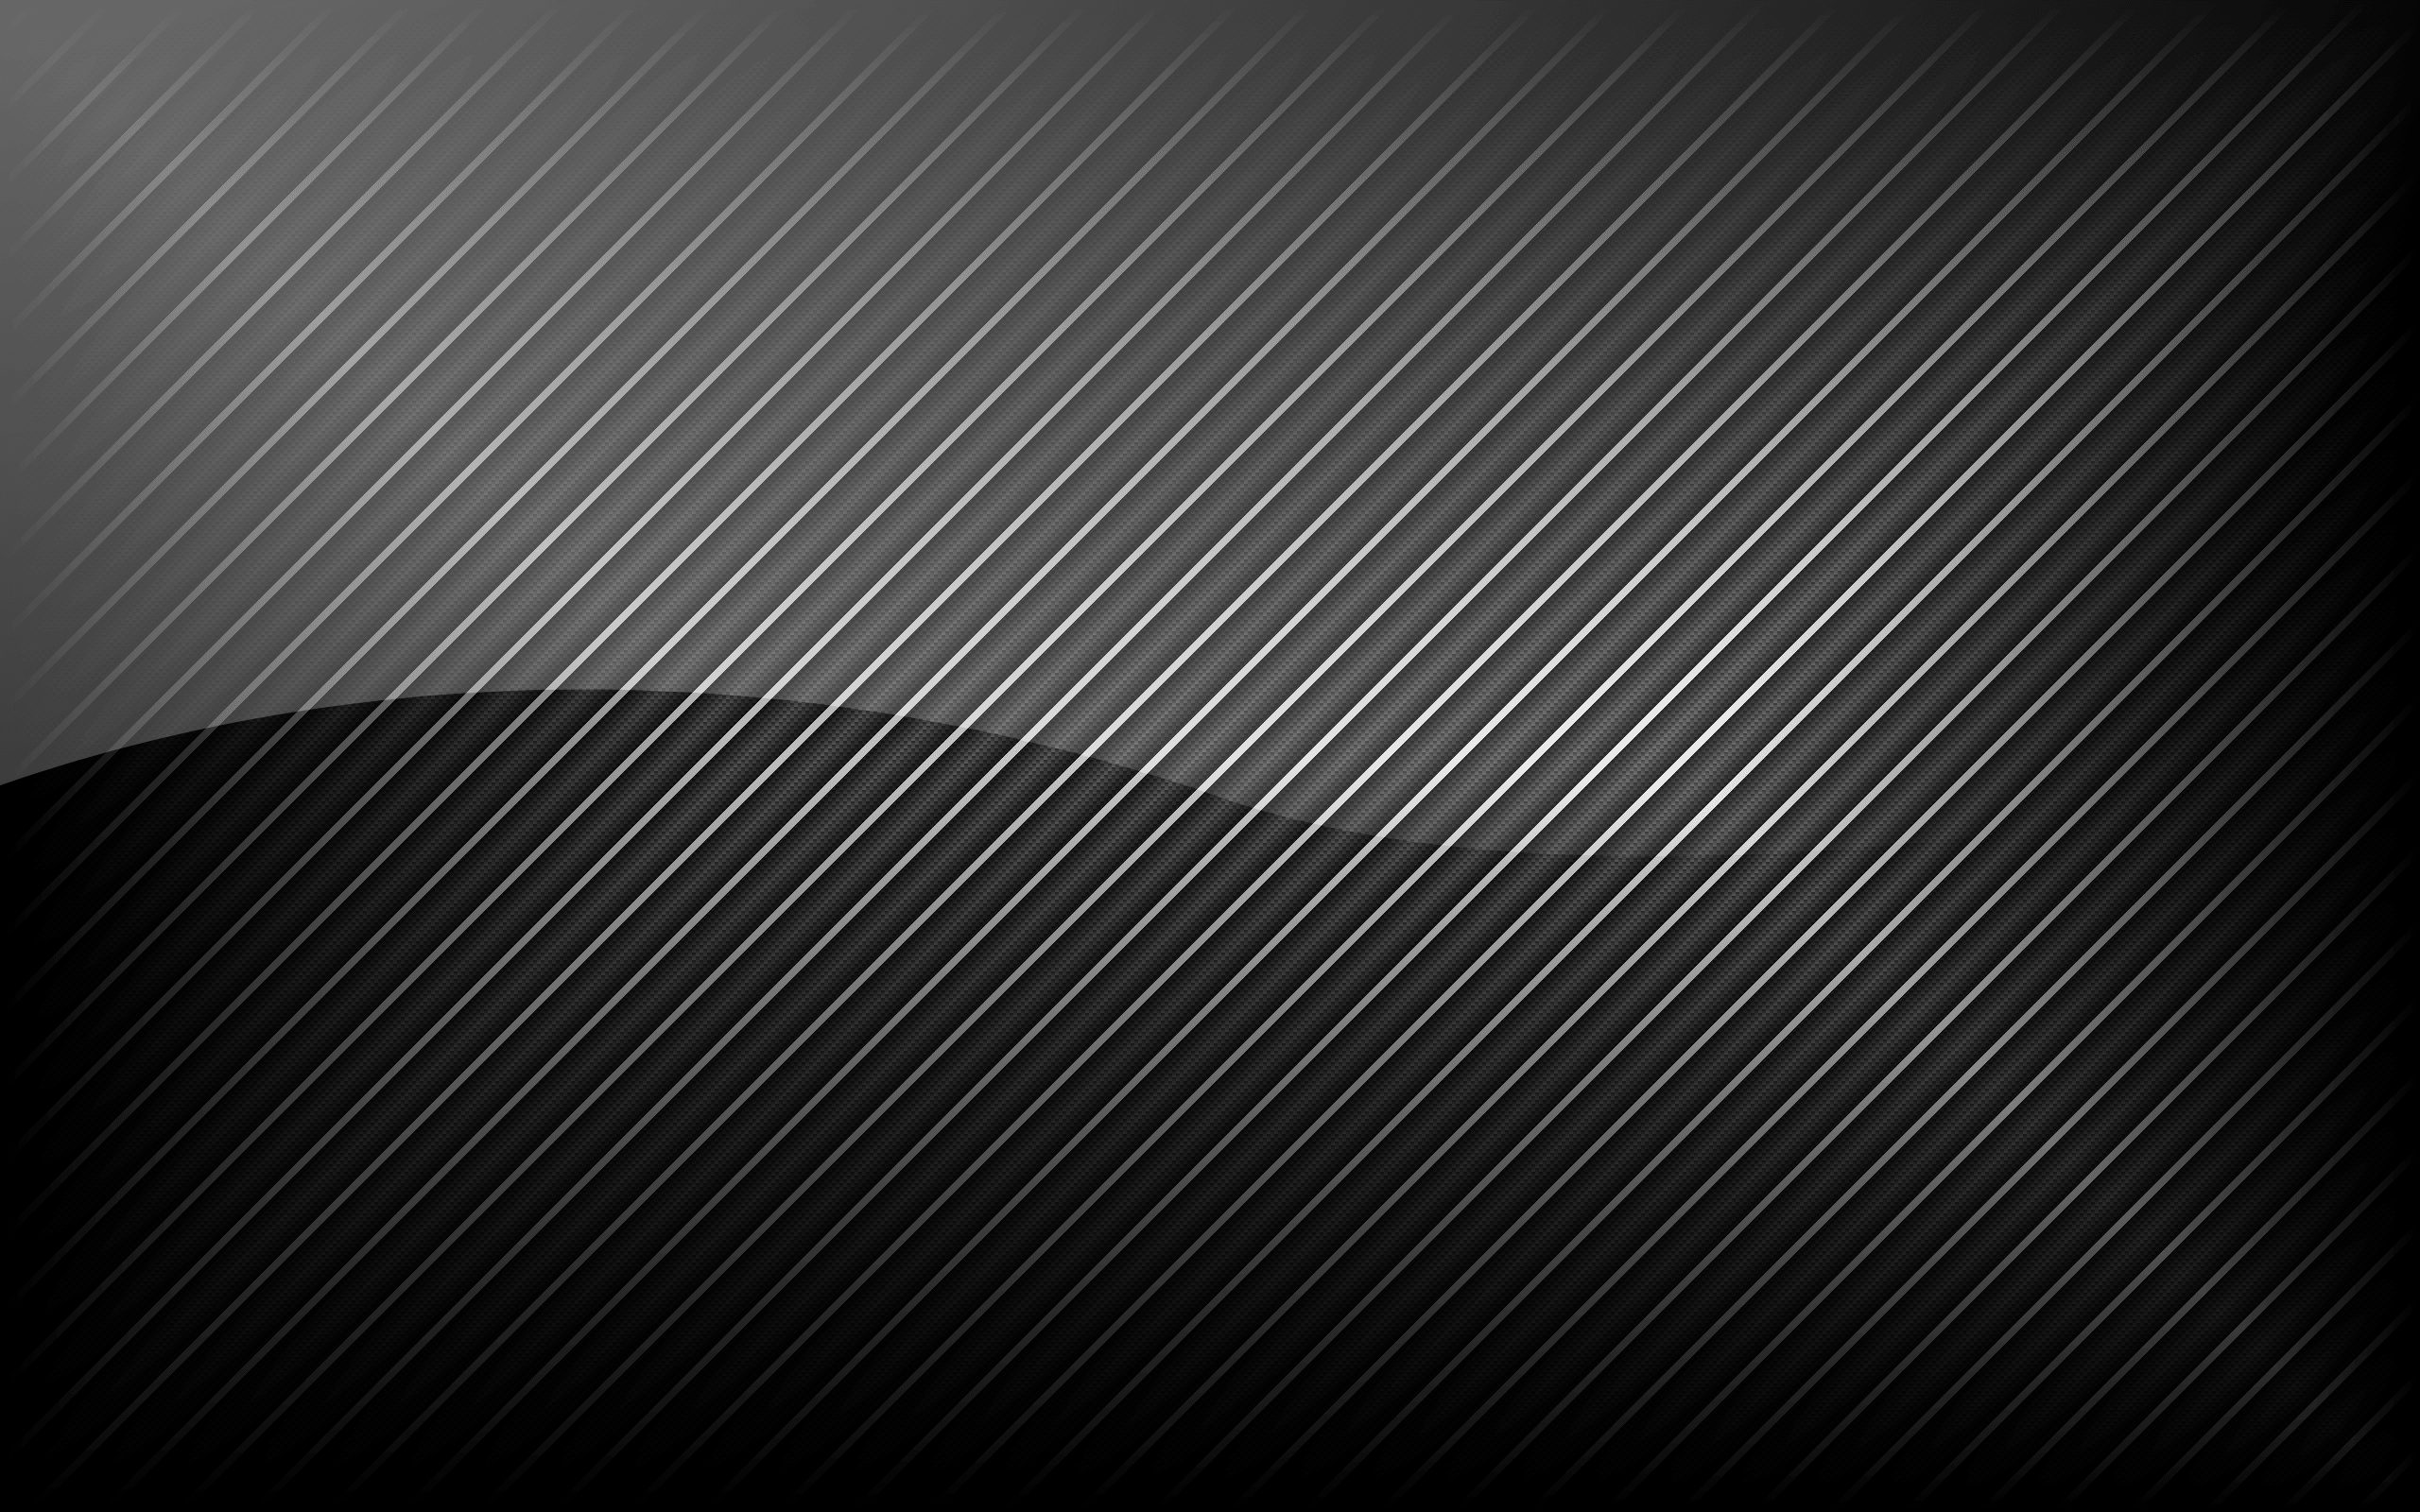 Top 10 3d Wallpapers For Android Dark Minimalism Hd Artist 4k Wallpapers Images